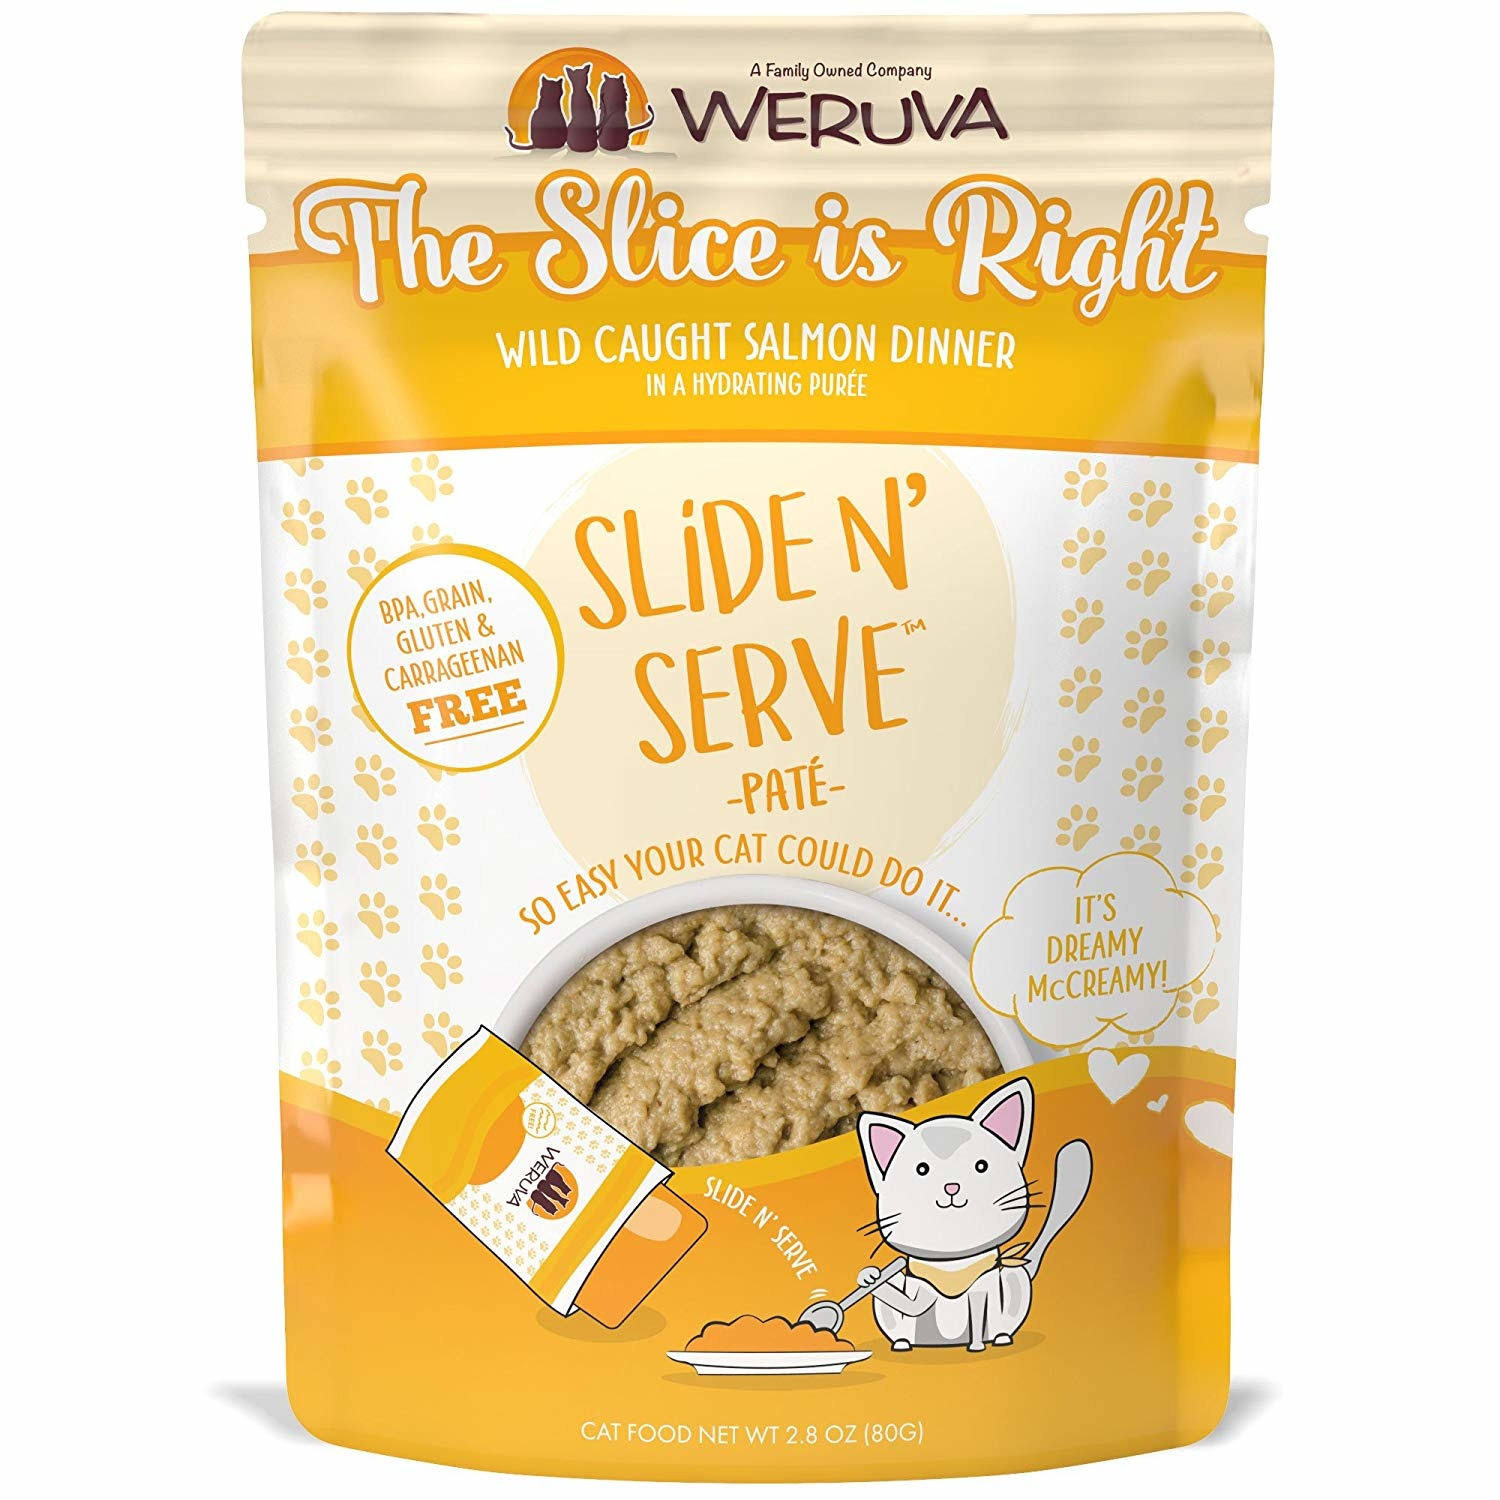 Weruva 813778018937 2.8 oz Cat Slide & Serve The Slice Is Right Food